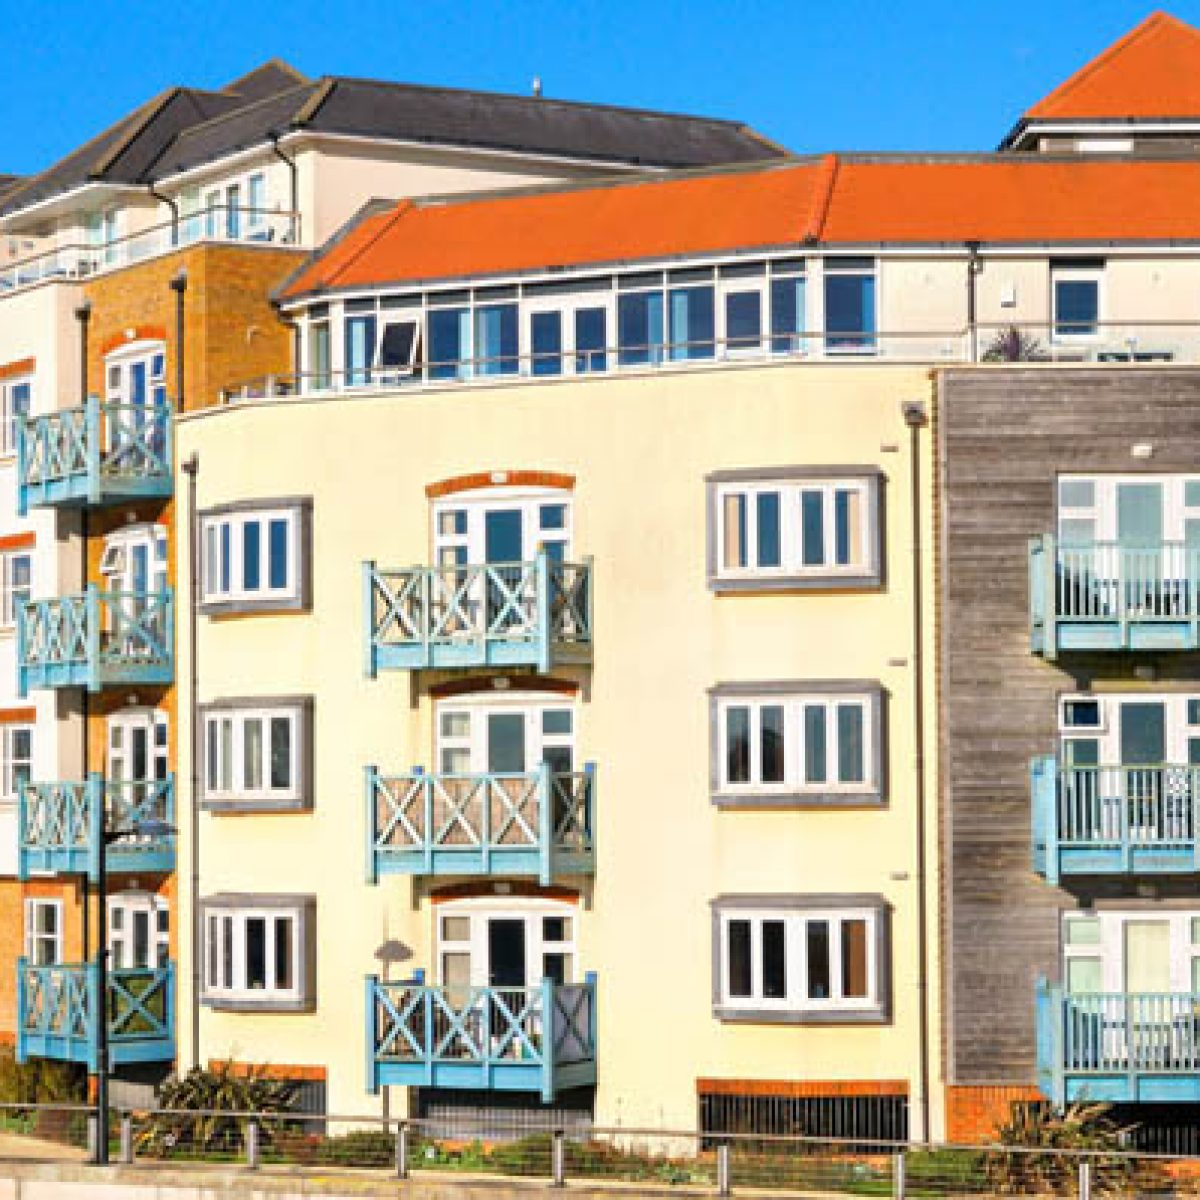 Freehold vs leasehold – what's the difference?